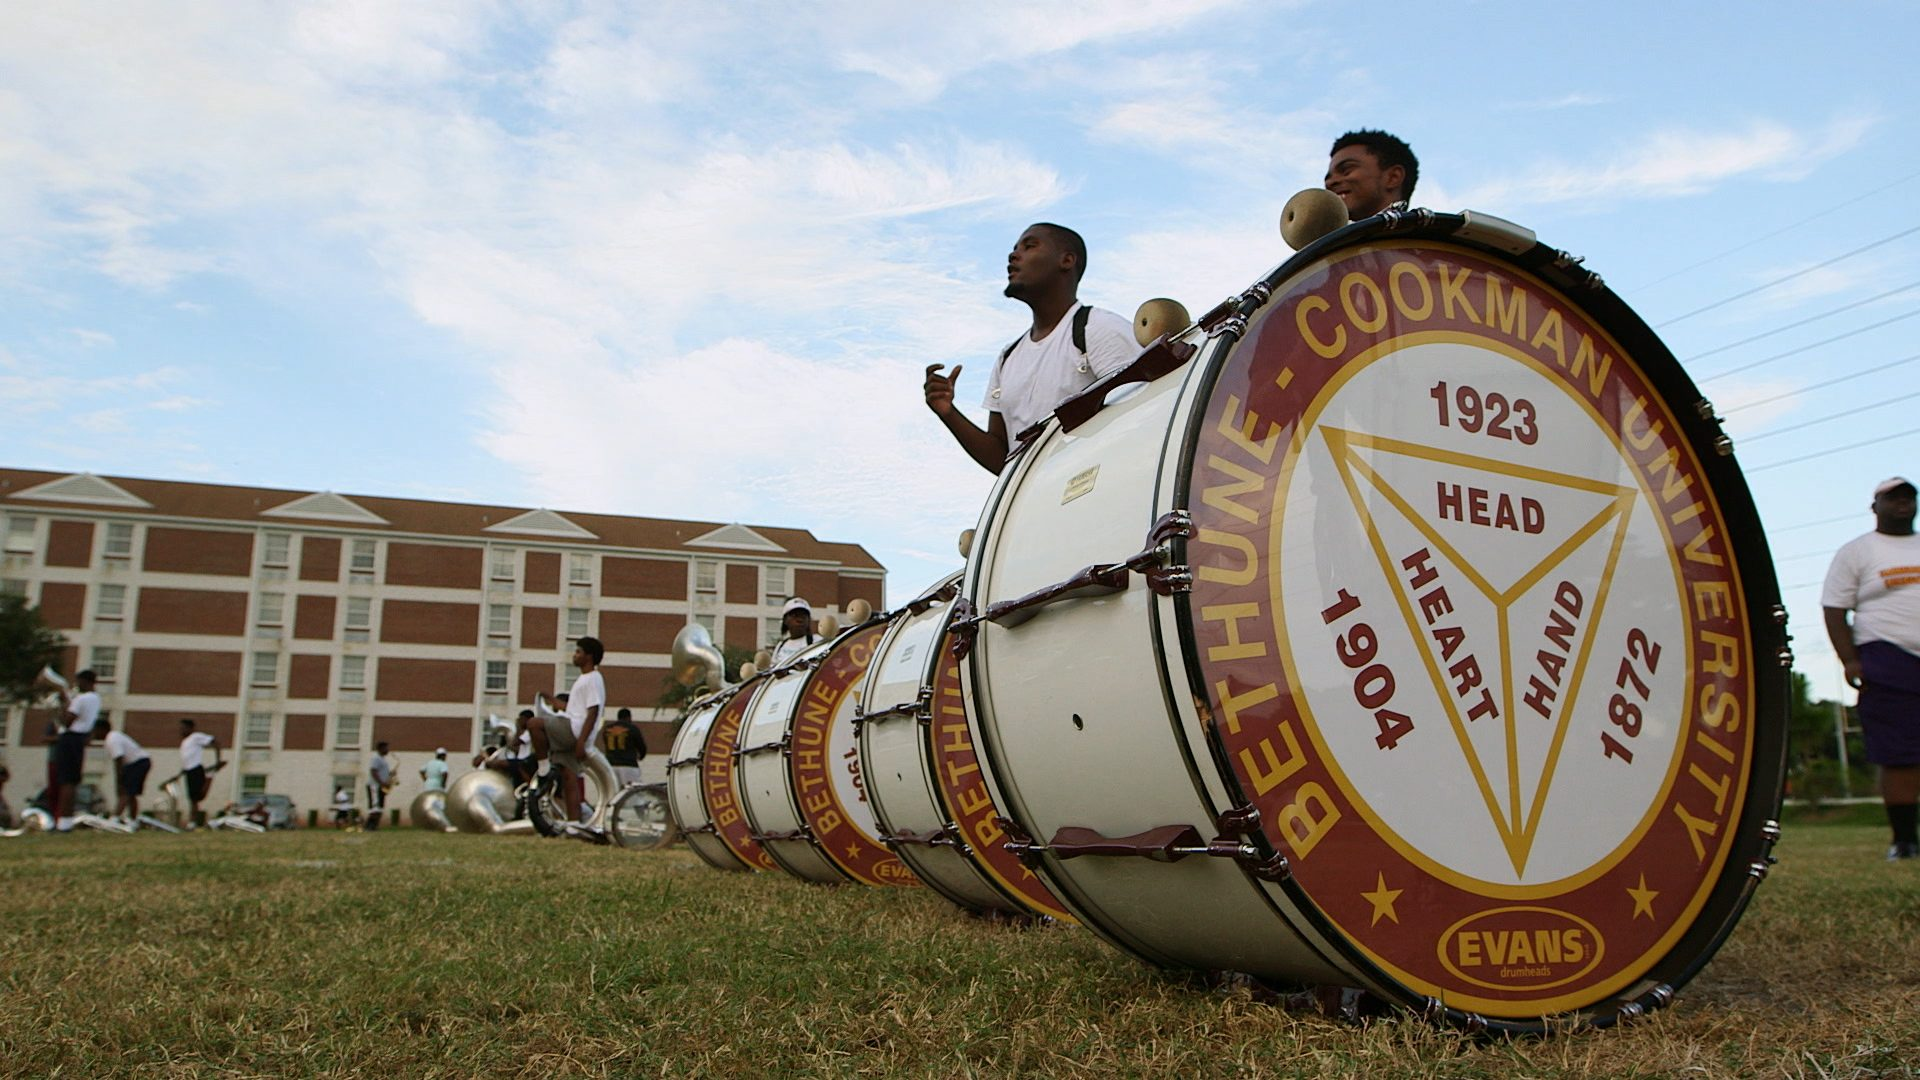 Band Practice, Rehearsal, Field, Formation, Before Queen City Battle Of The Bands, Bethune-Cookman University, BCU, Marching Wildcats, Marching Orders, Stage 13 Original, stage13network